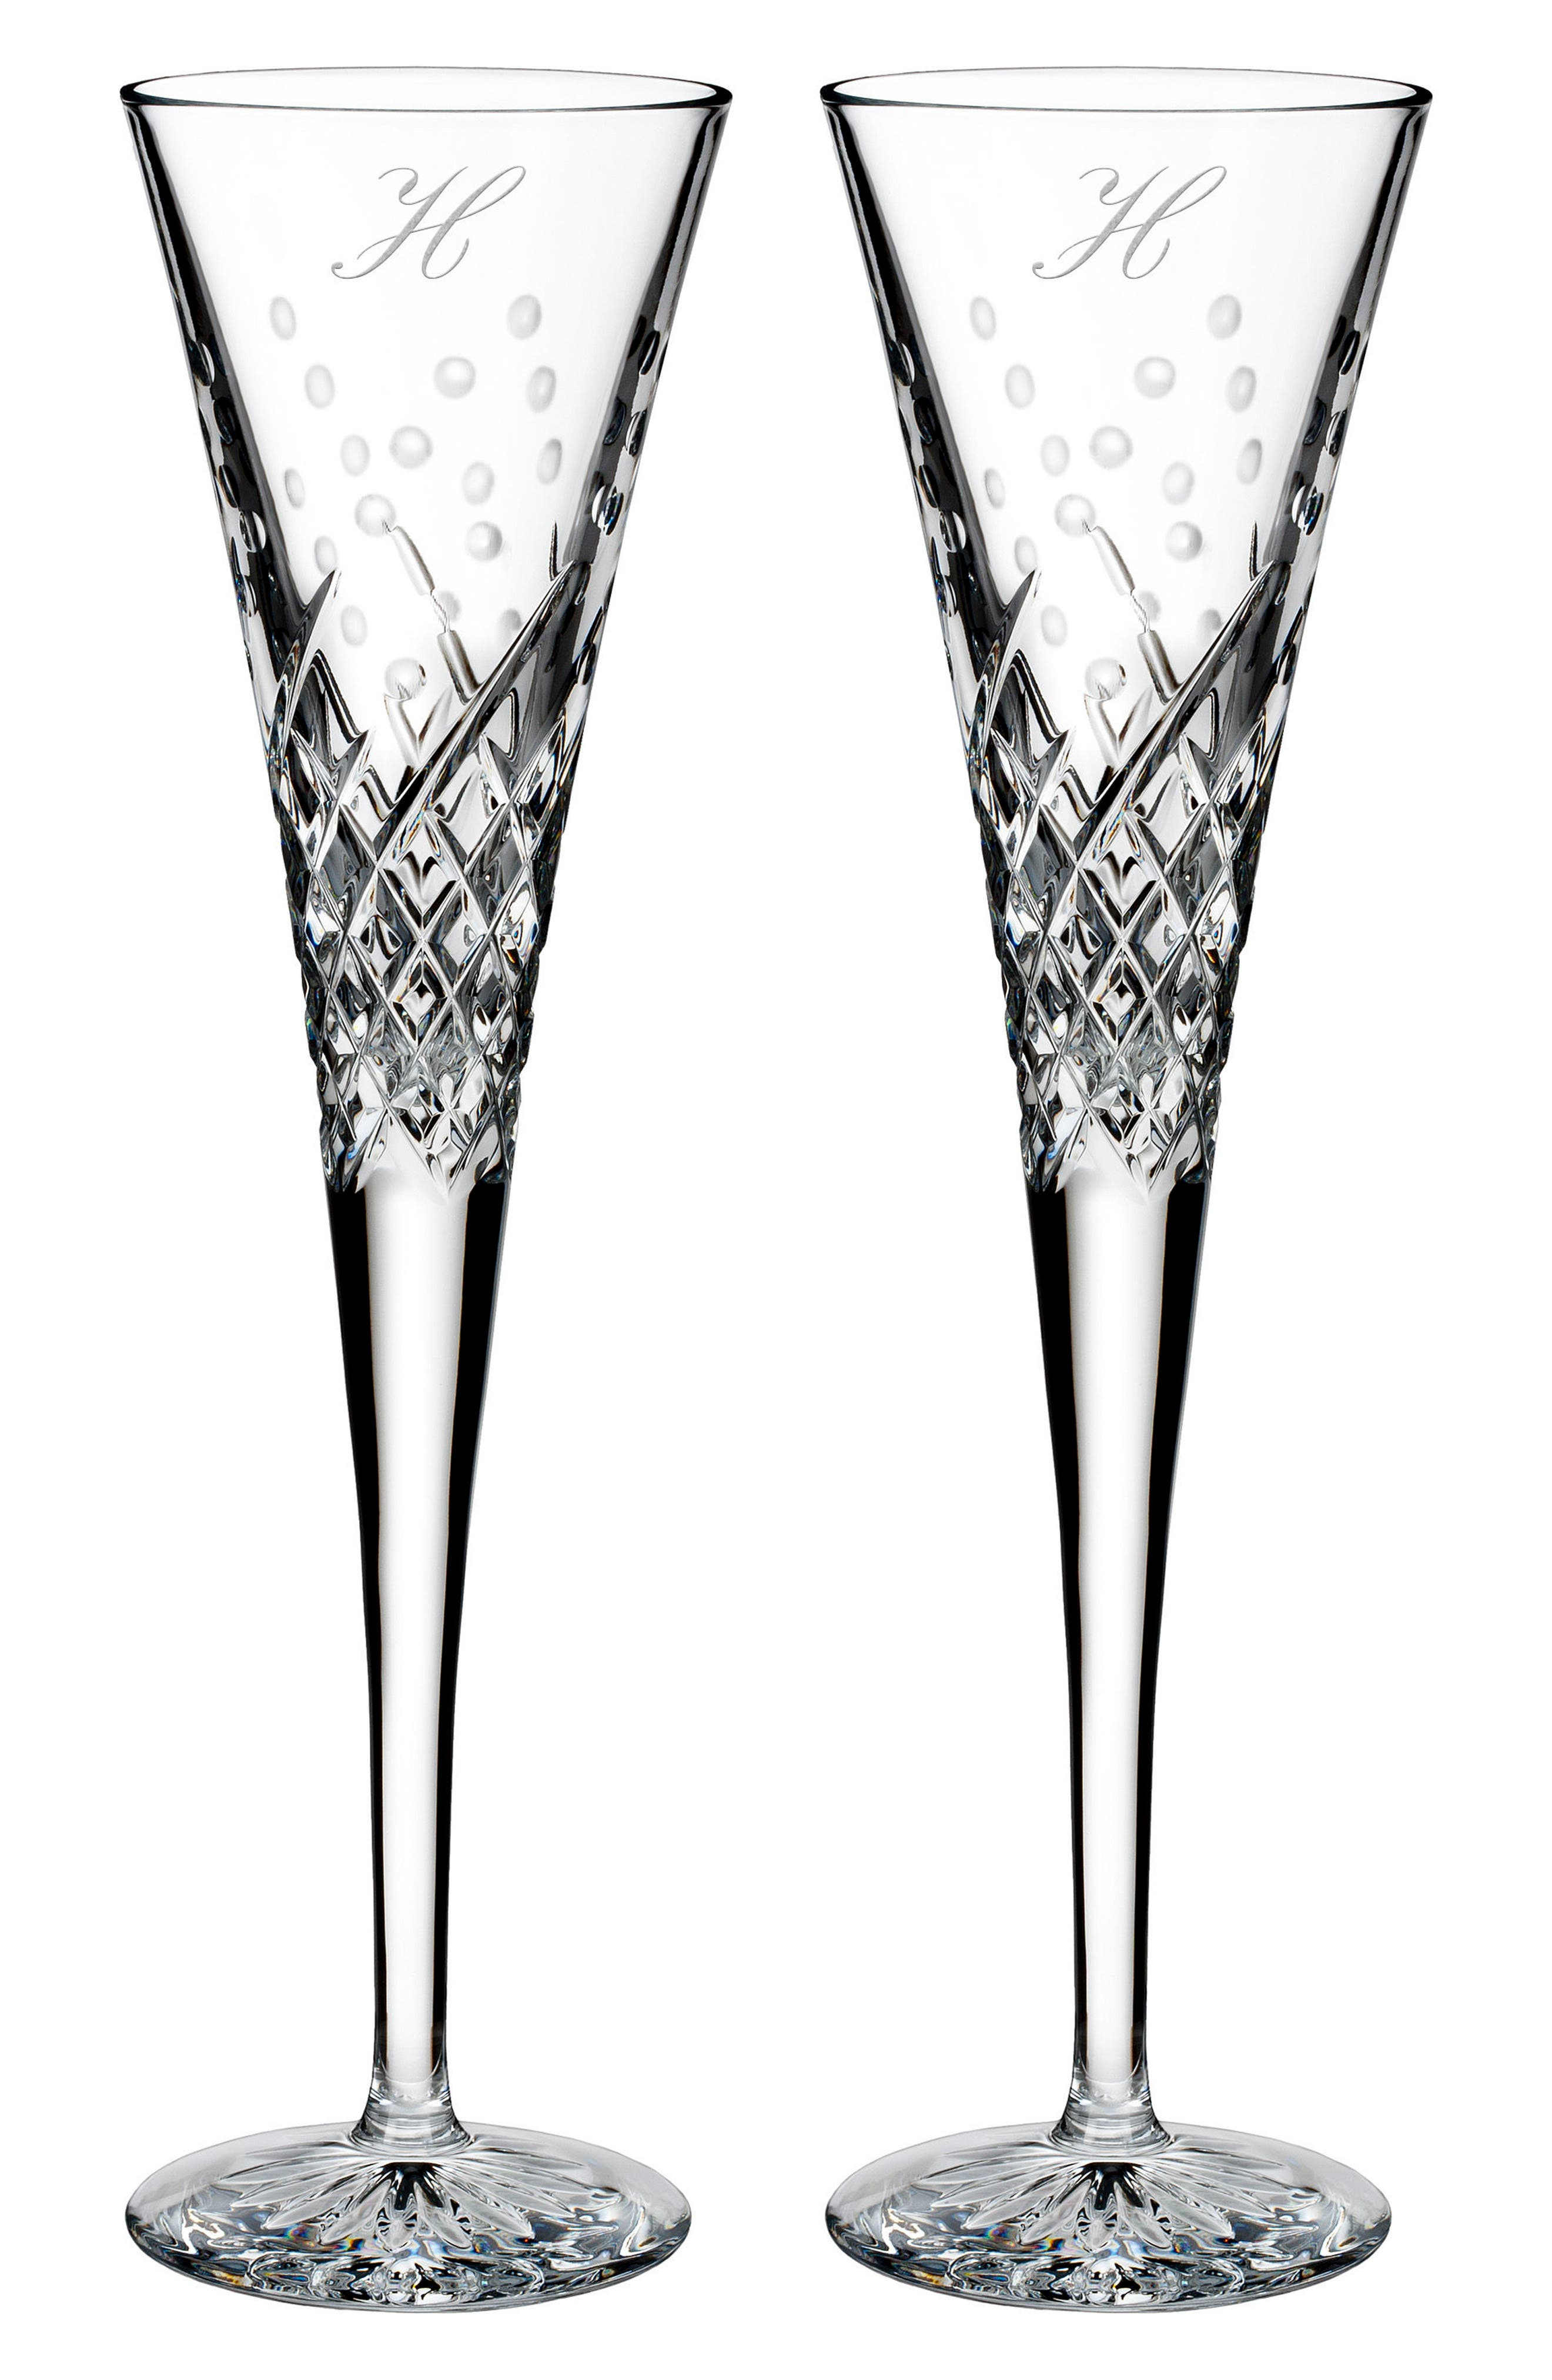 Happy Celebrations Set of 2 Monogram Lead Crystal Champagne Flutes,                             Main thumbnail 1, color,                             CLEAR - H